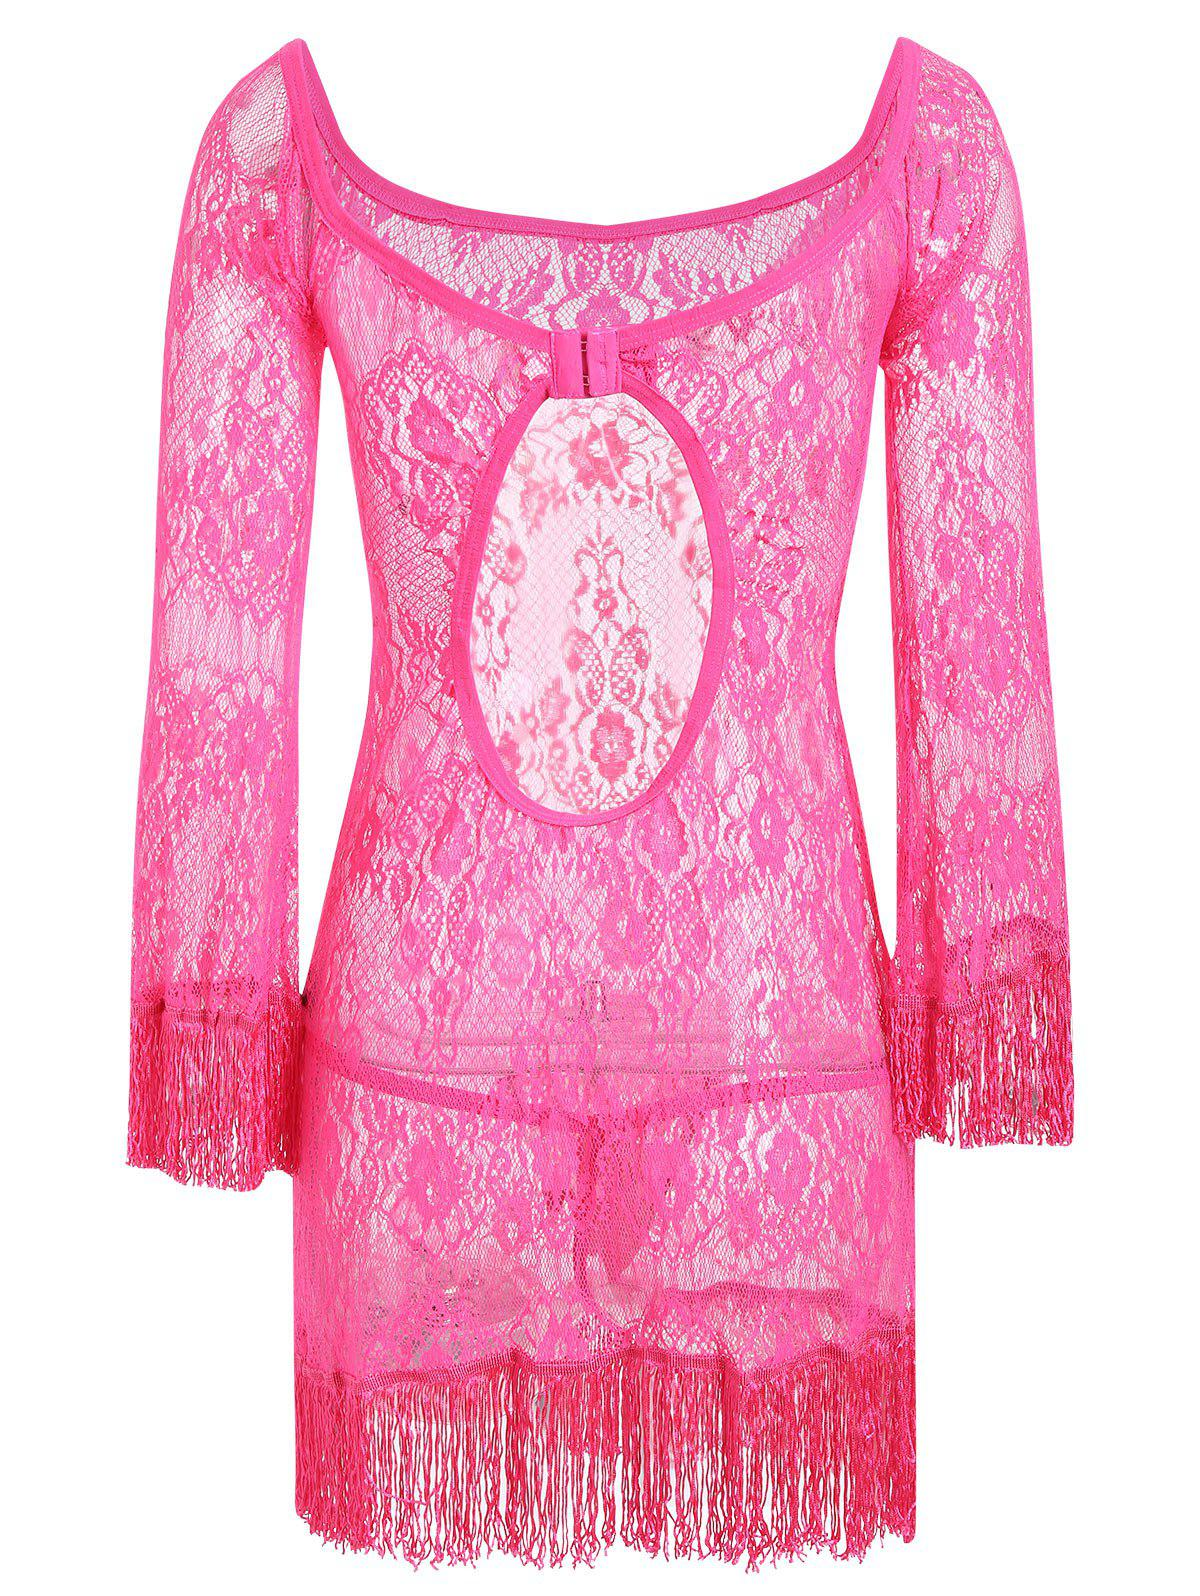 Lace Sheer Backless Babydoll with Fringes - TUTTI FRUTTI M